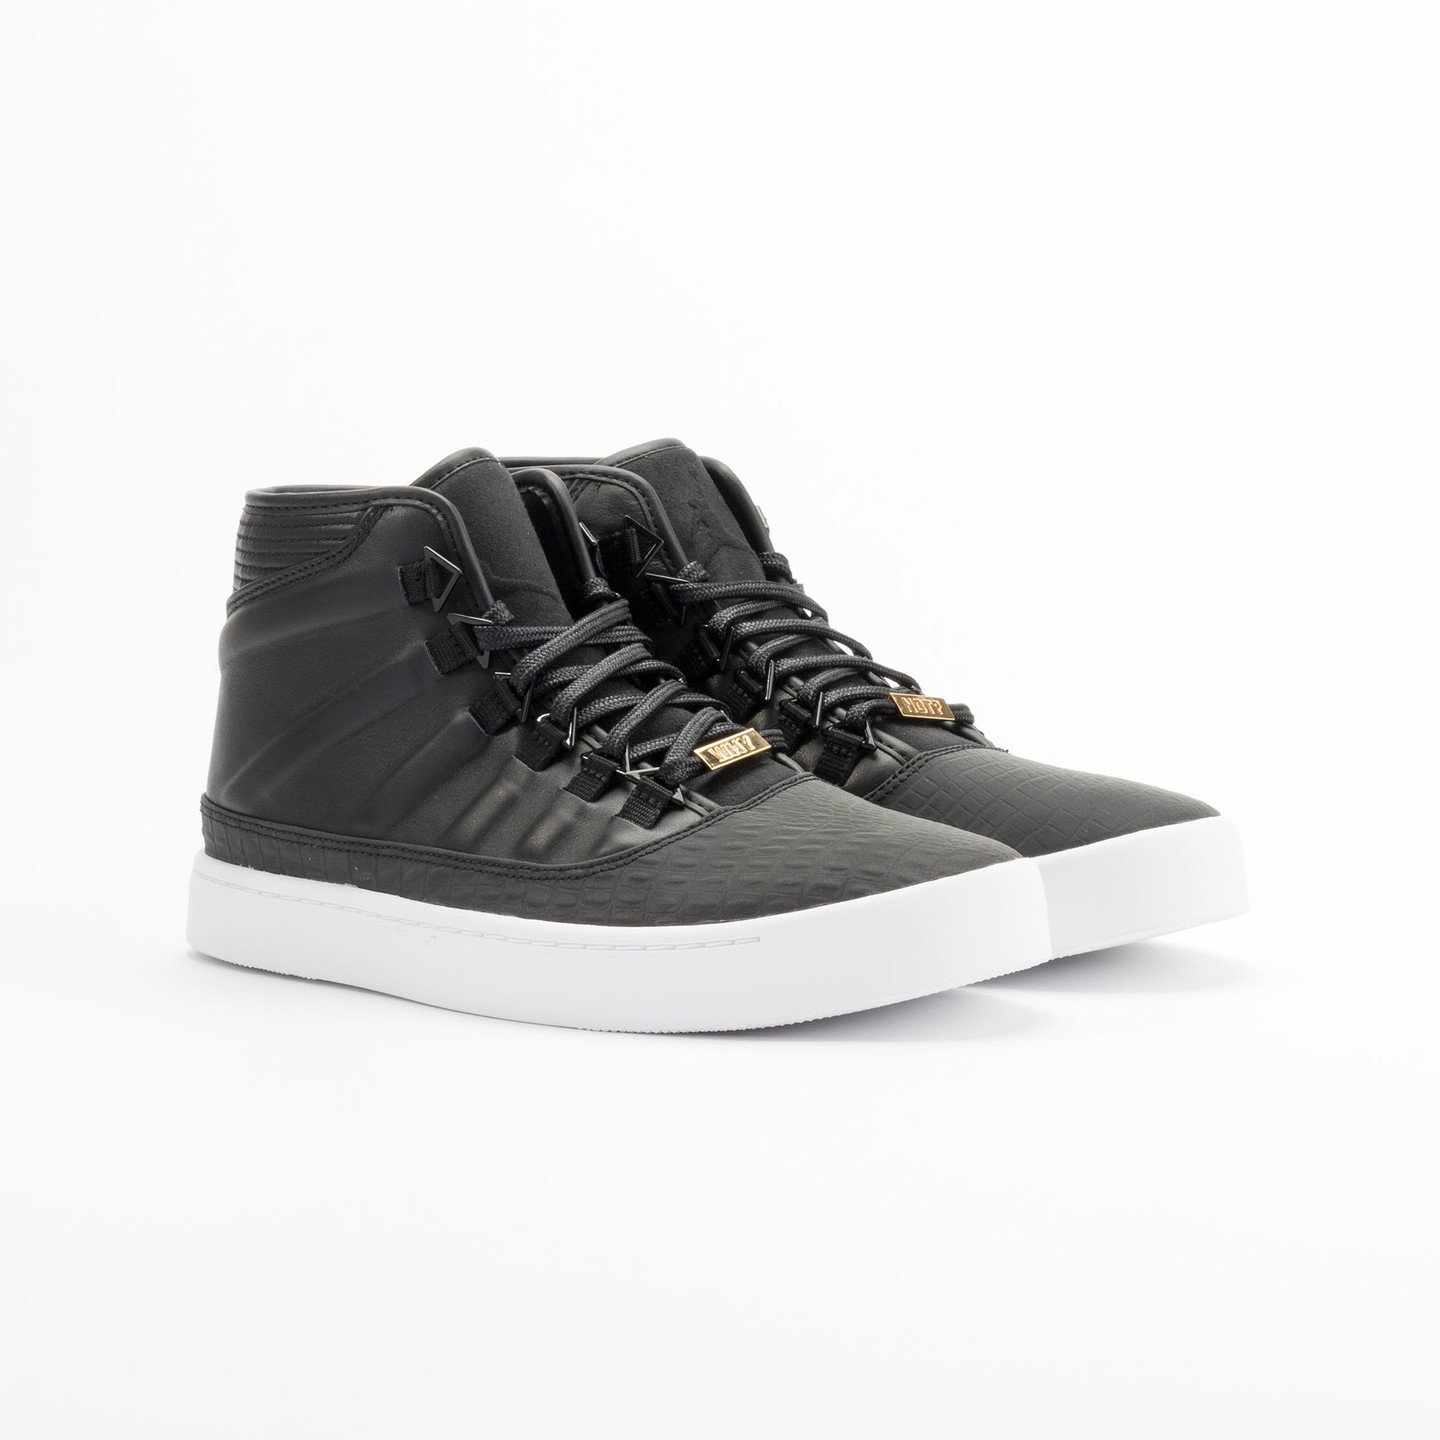 Jordan Westbrook 0 Black Metallic / Gold - White 768934-001-43